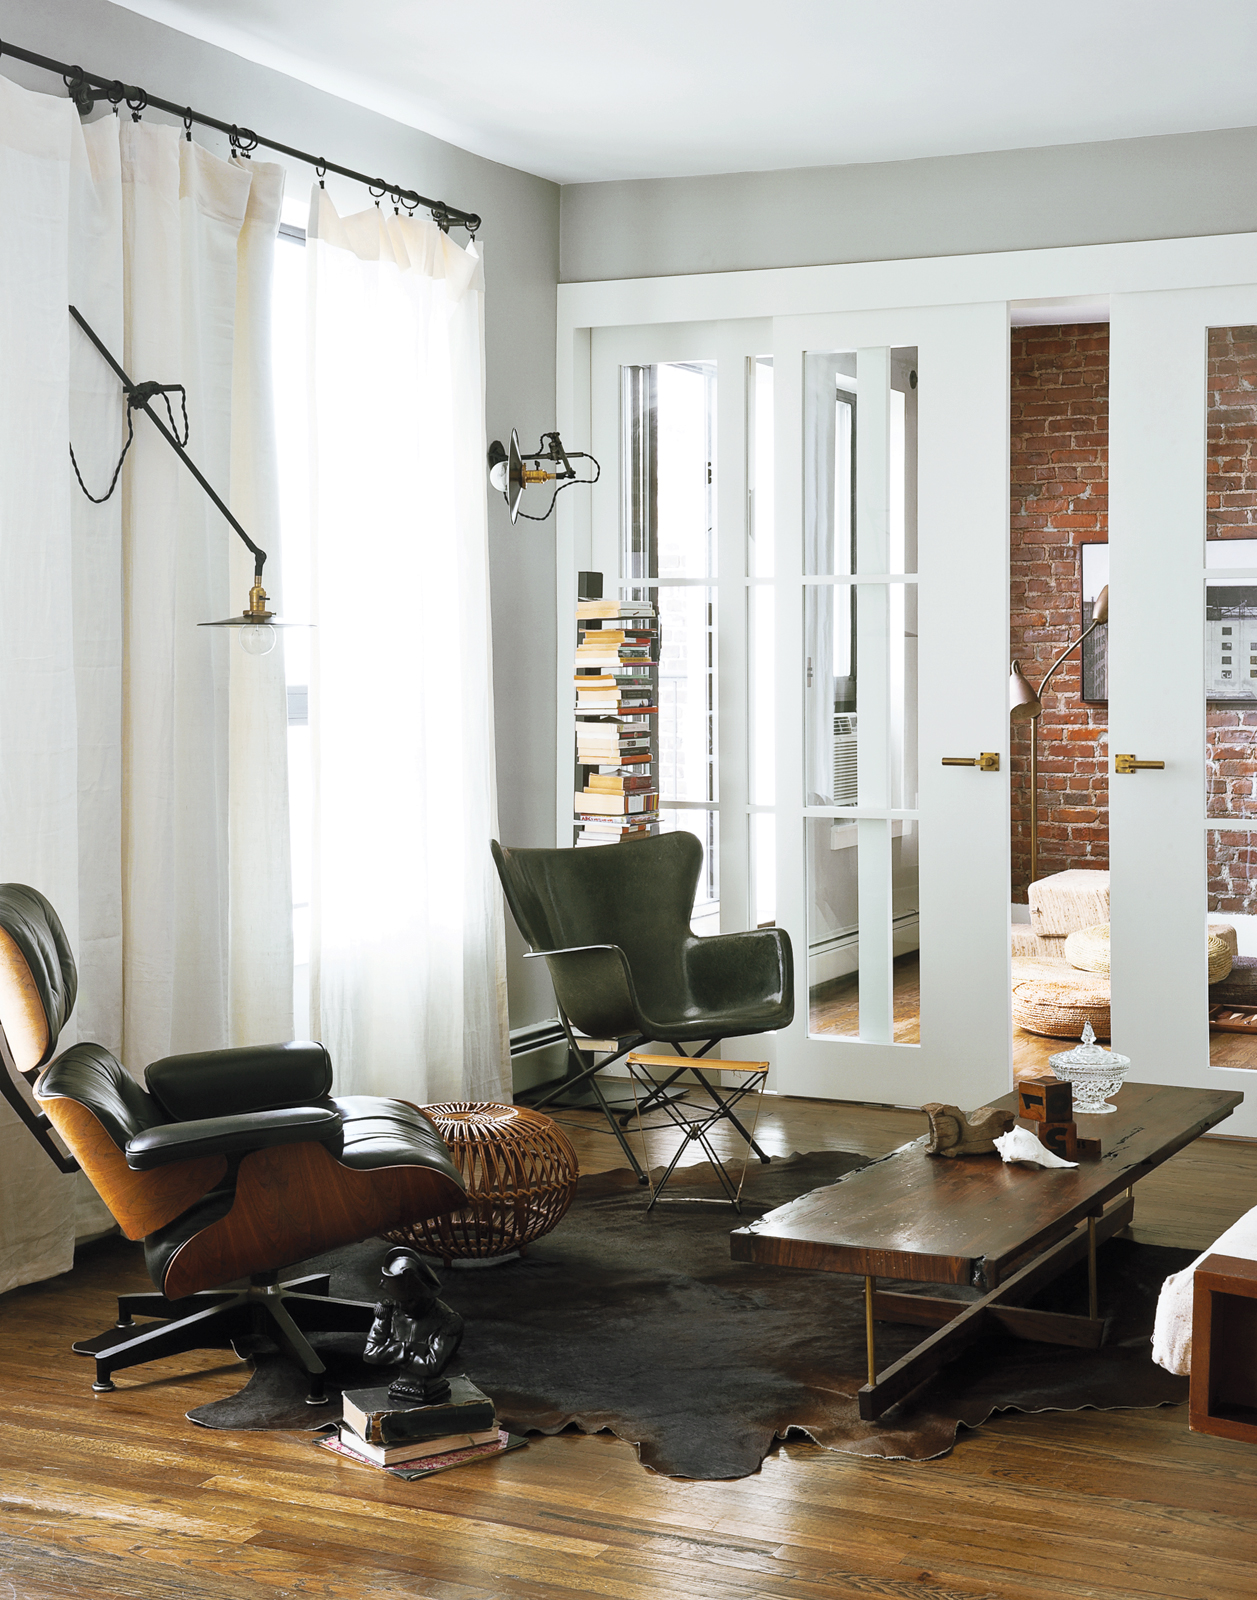 Minimalist living room with Eames lounge chair